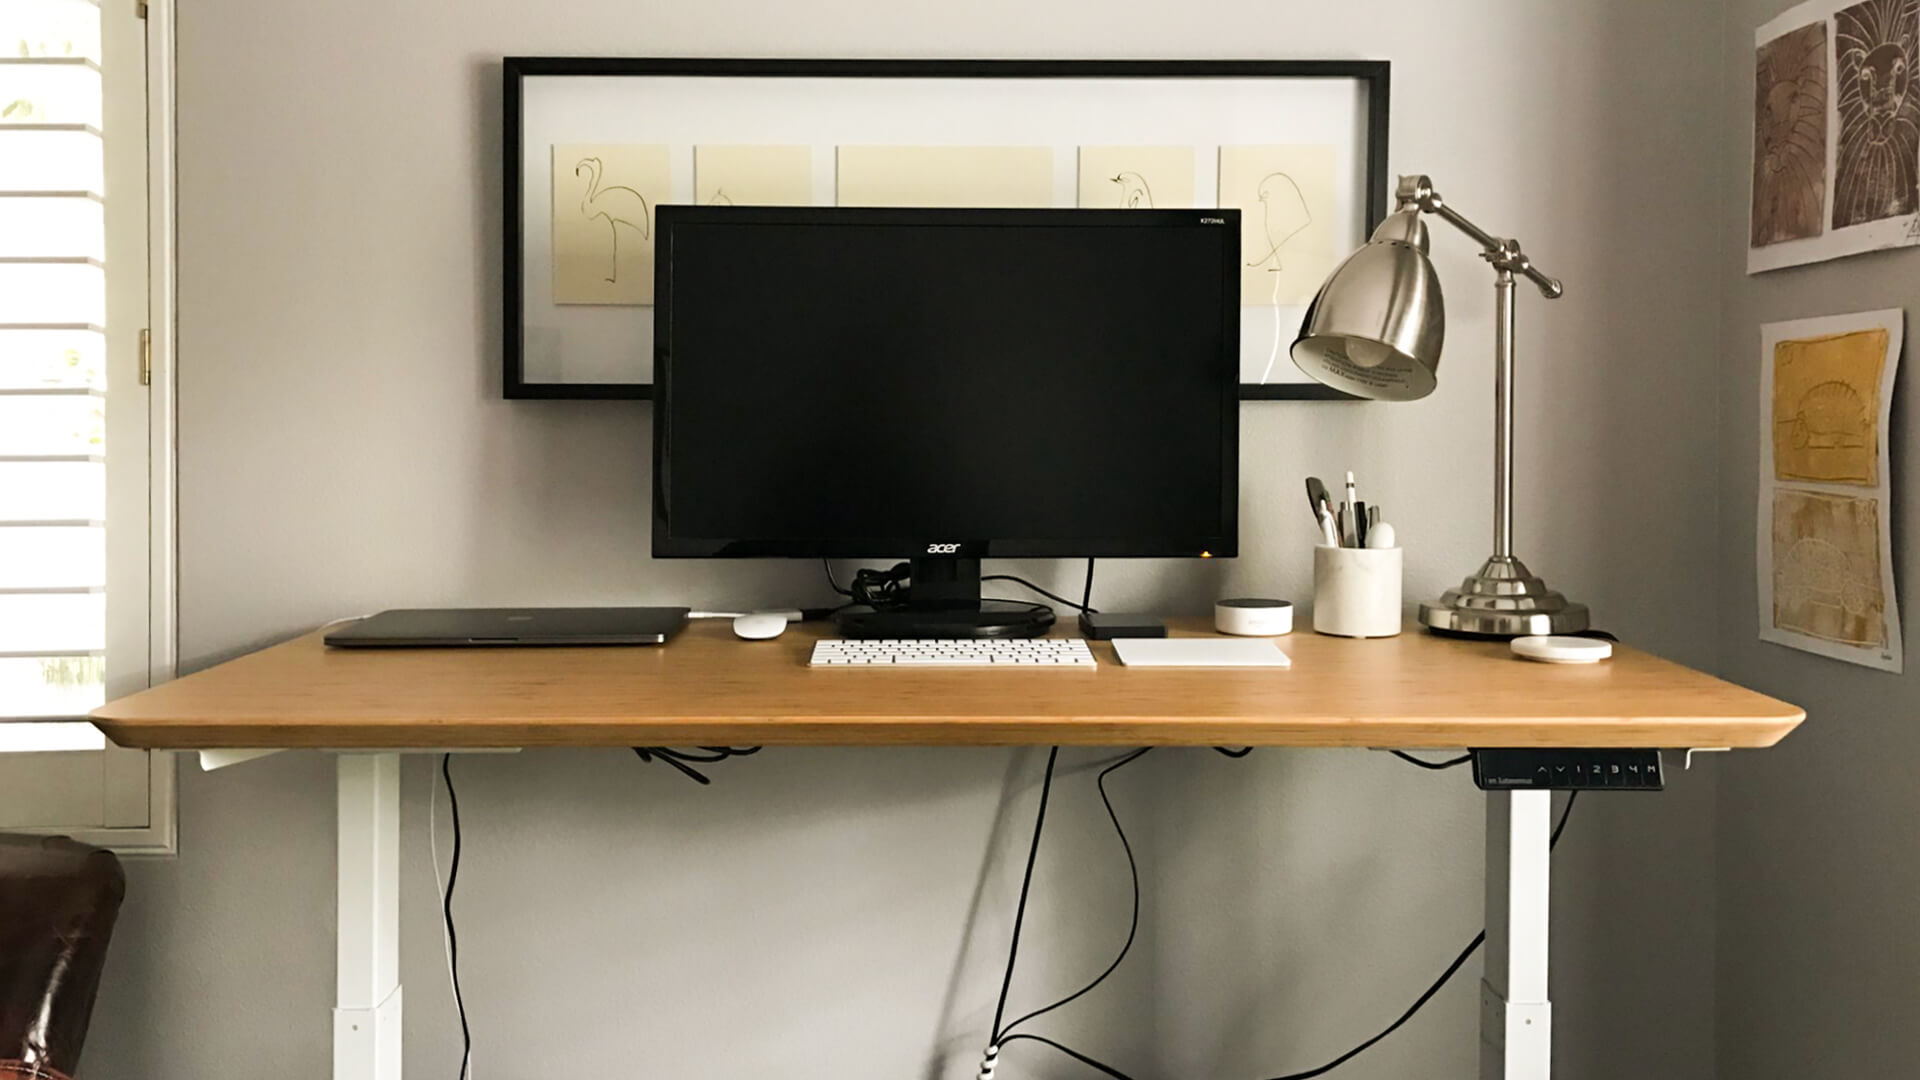 Diy Desktop Standing Desk Discover The Simplest Low Cost Standing Desks Diy Plans